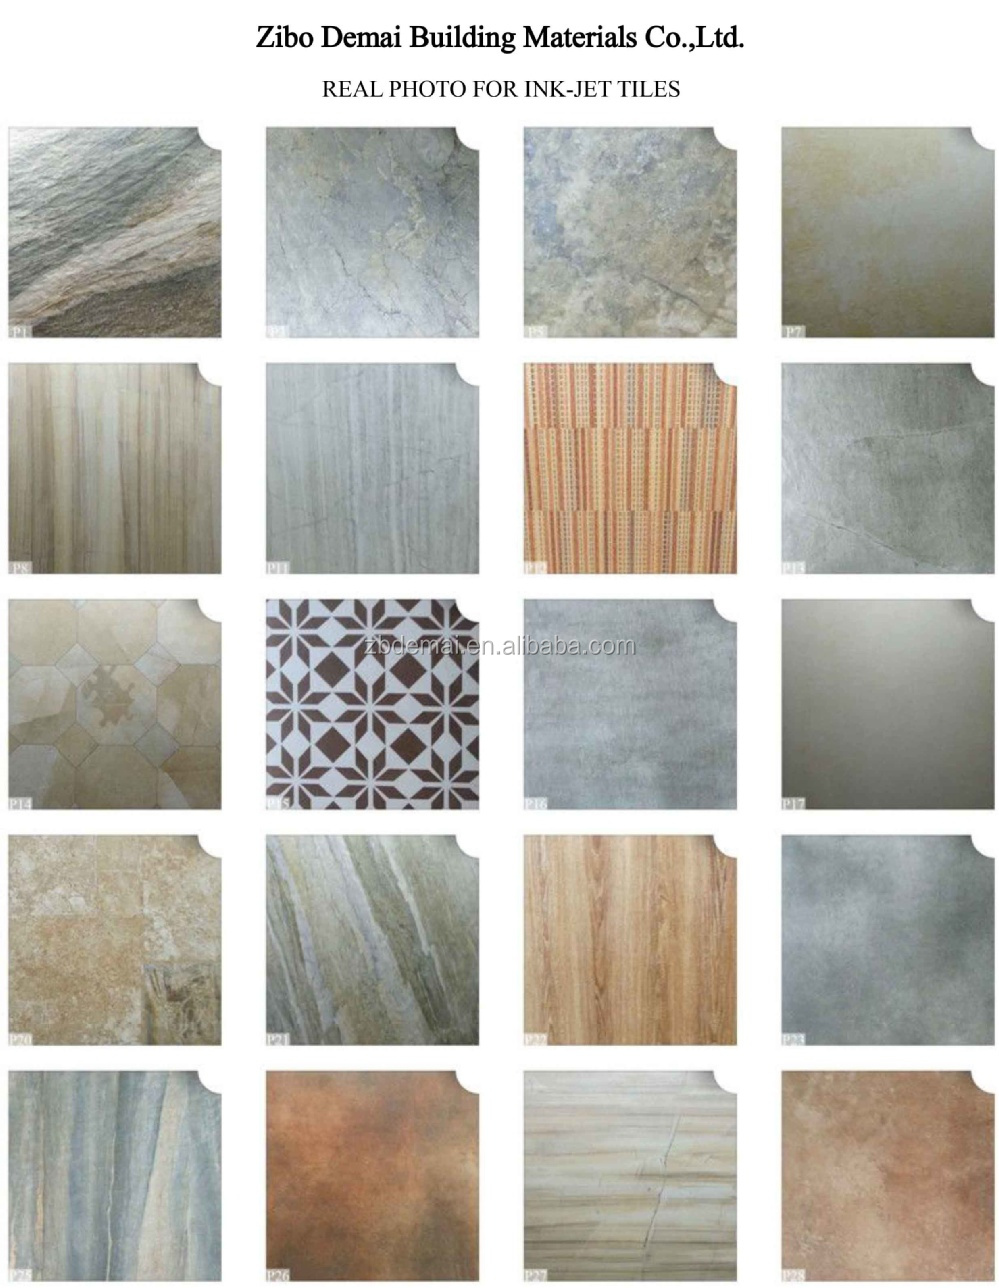 Bathroom floor tile cheap price modern rustic living room kitchen bathroom floor tile cheap price modern rustic living room kitchen ceramic flooring tile 60x60 doublecrazyfo Images